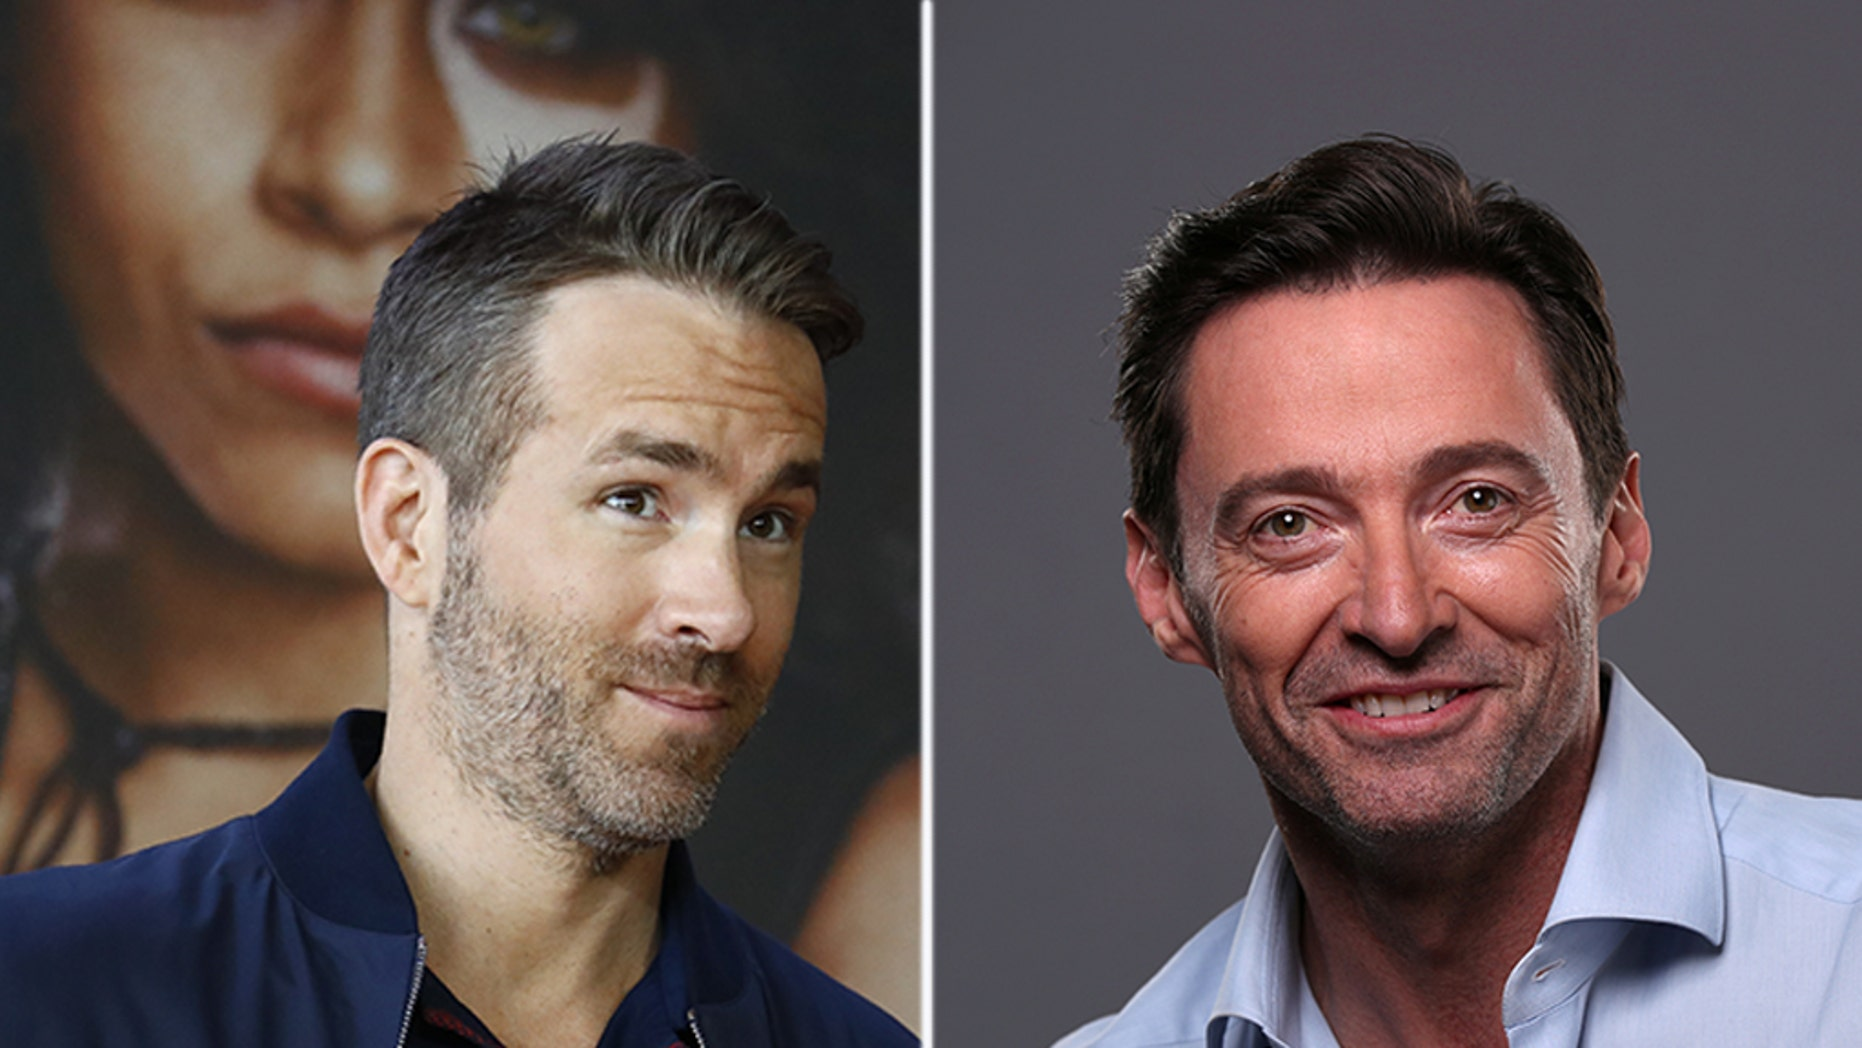 Ryan Reynolds Expertly Trolls Hugh Jackman With Spoof Political Attack Ad